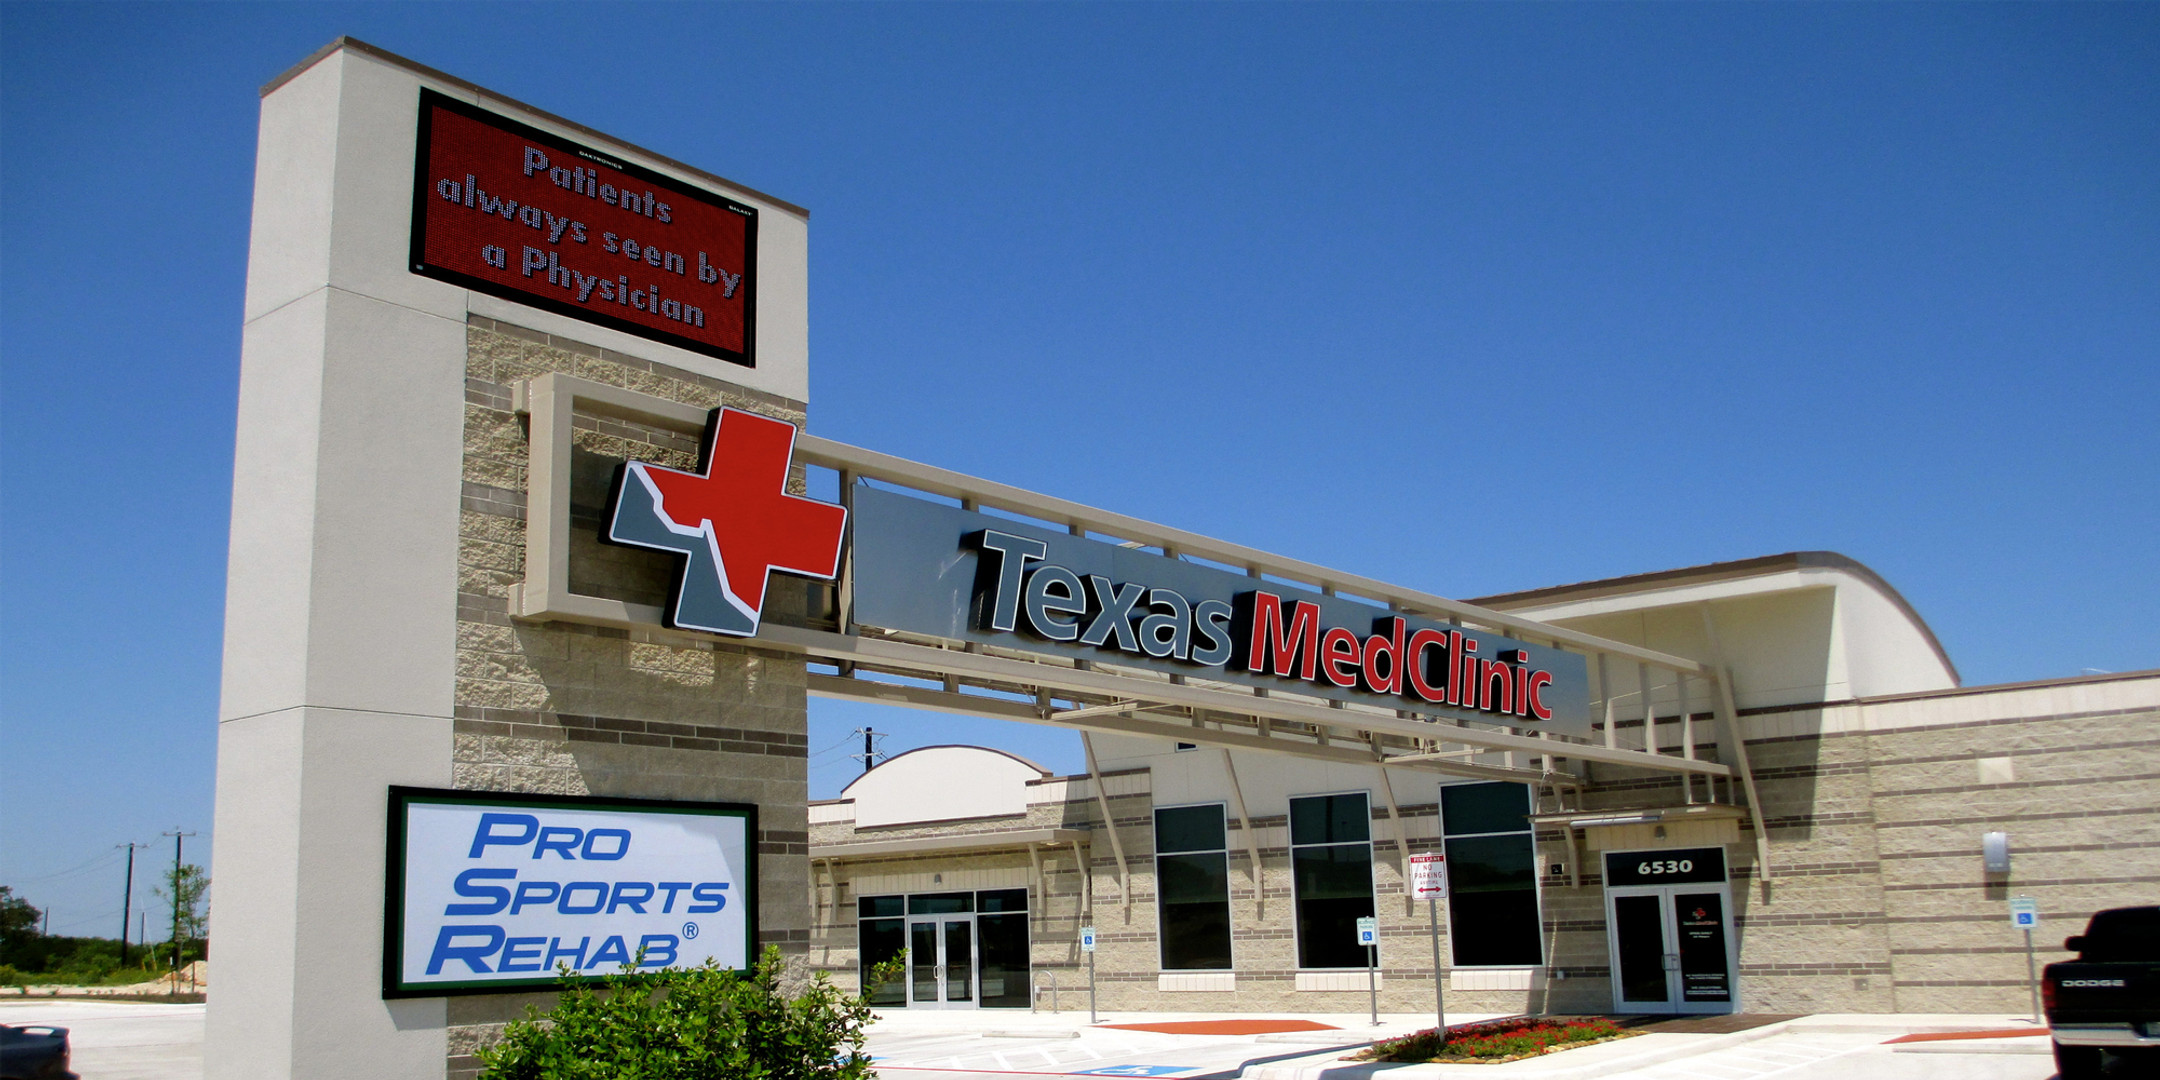 Texas MedClinic - 4800x2400_edited.jpg